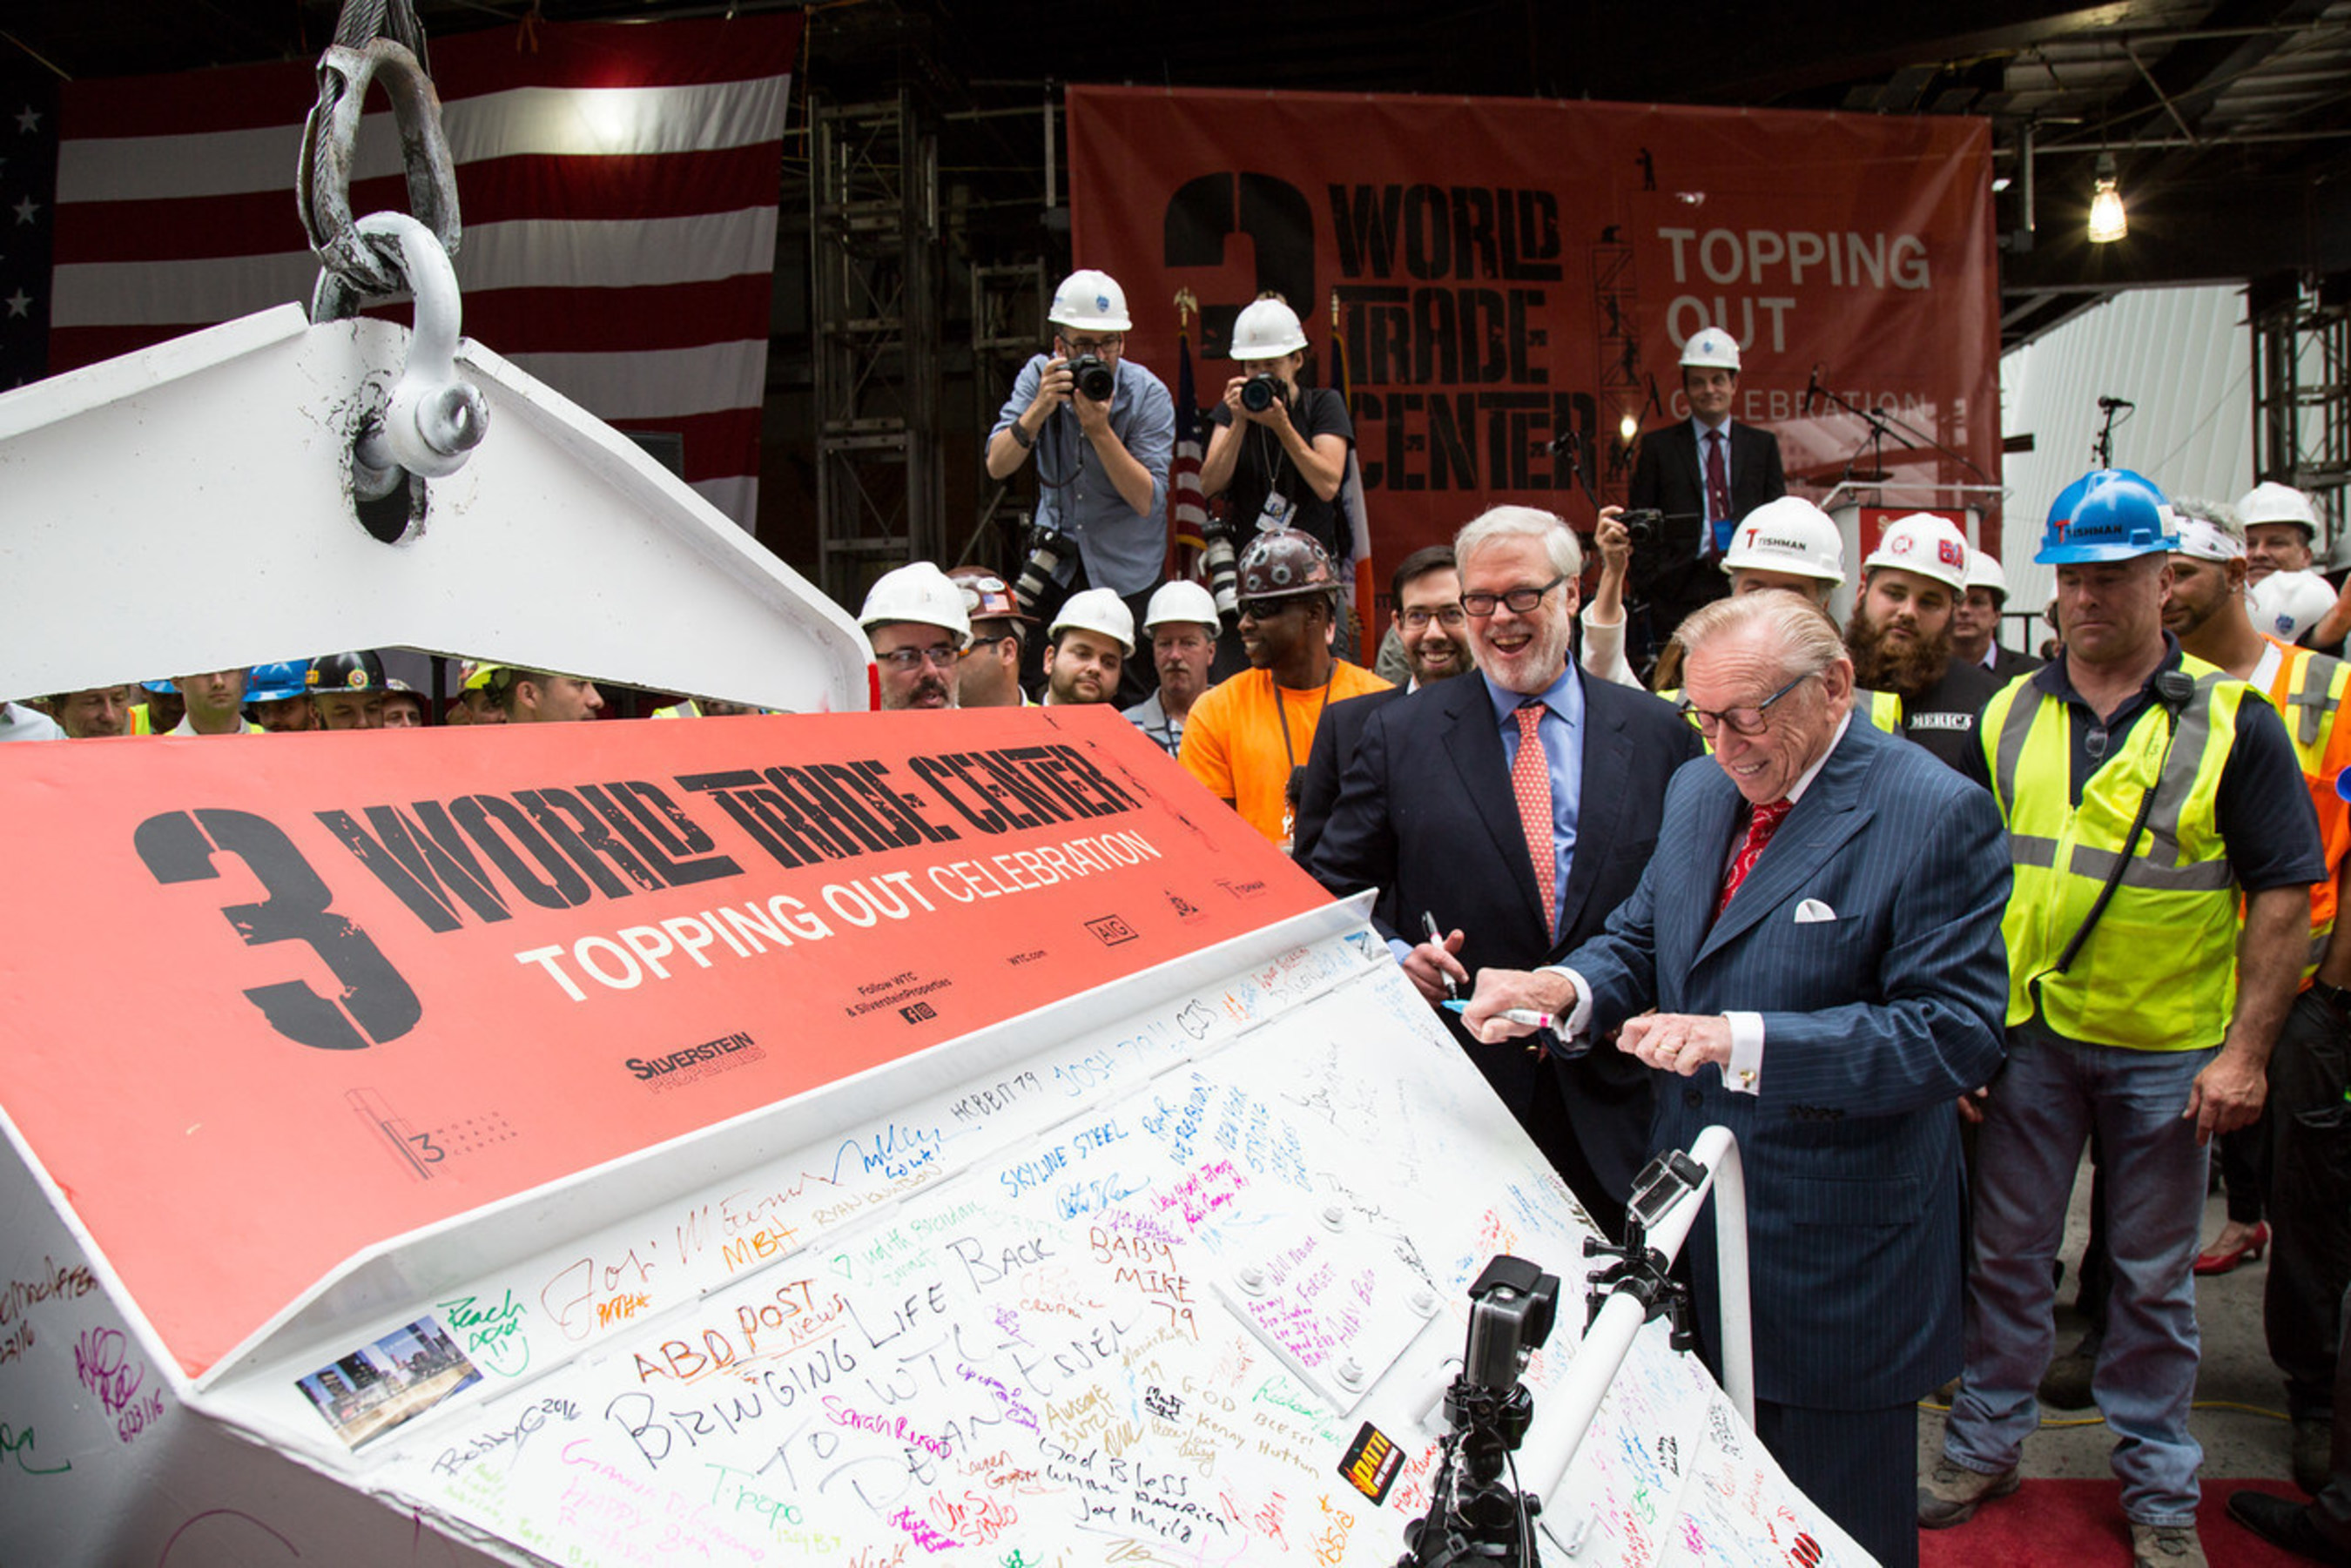 Silverstein Properties Chairman Larry A. Silverstein (right) and Port Authority of New York & New Jersey Executive Director Pat Foye at topping out ceremony for 3 World Trade Center